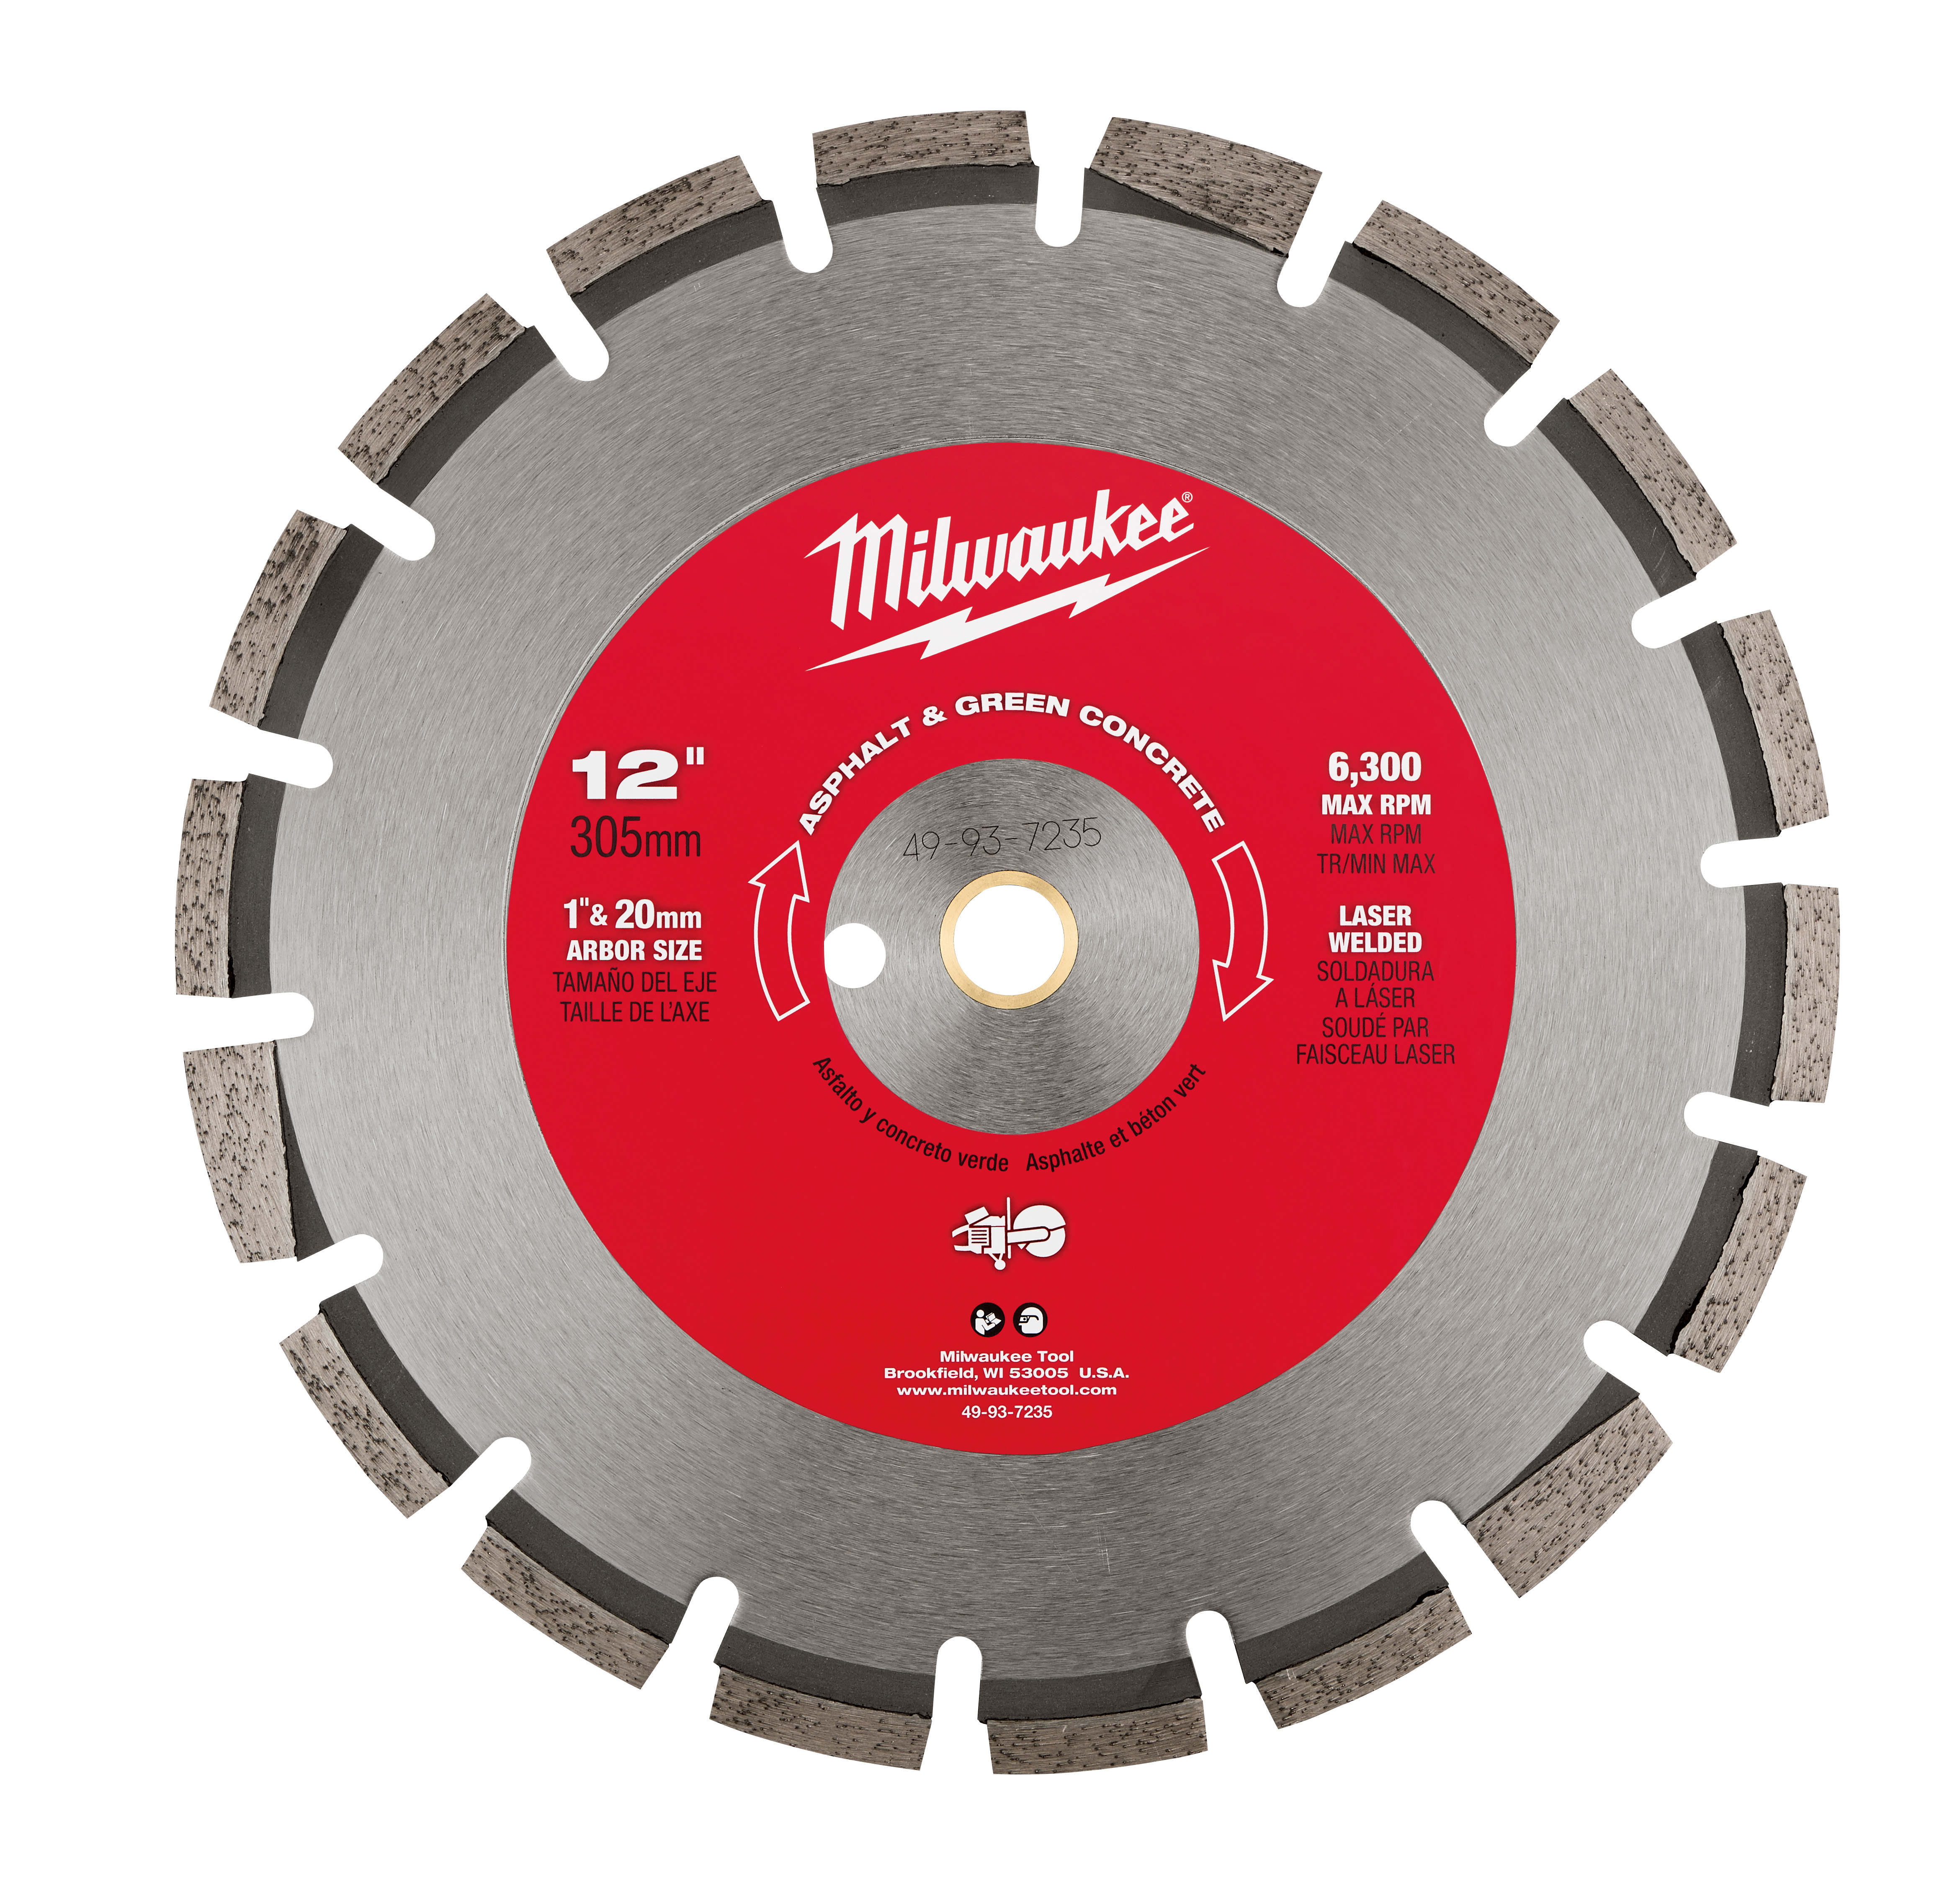 Milwaukee® 49-93-7235 Circular Segmented Diamond Blade, 12 in Dia Blade, 1/8 in W, 1 in Arbor/Shank, Dry/Wet Cutting